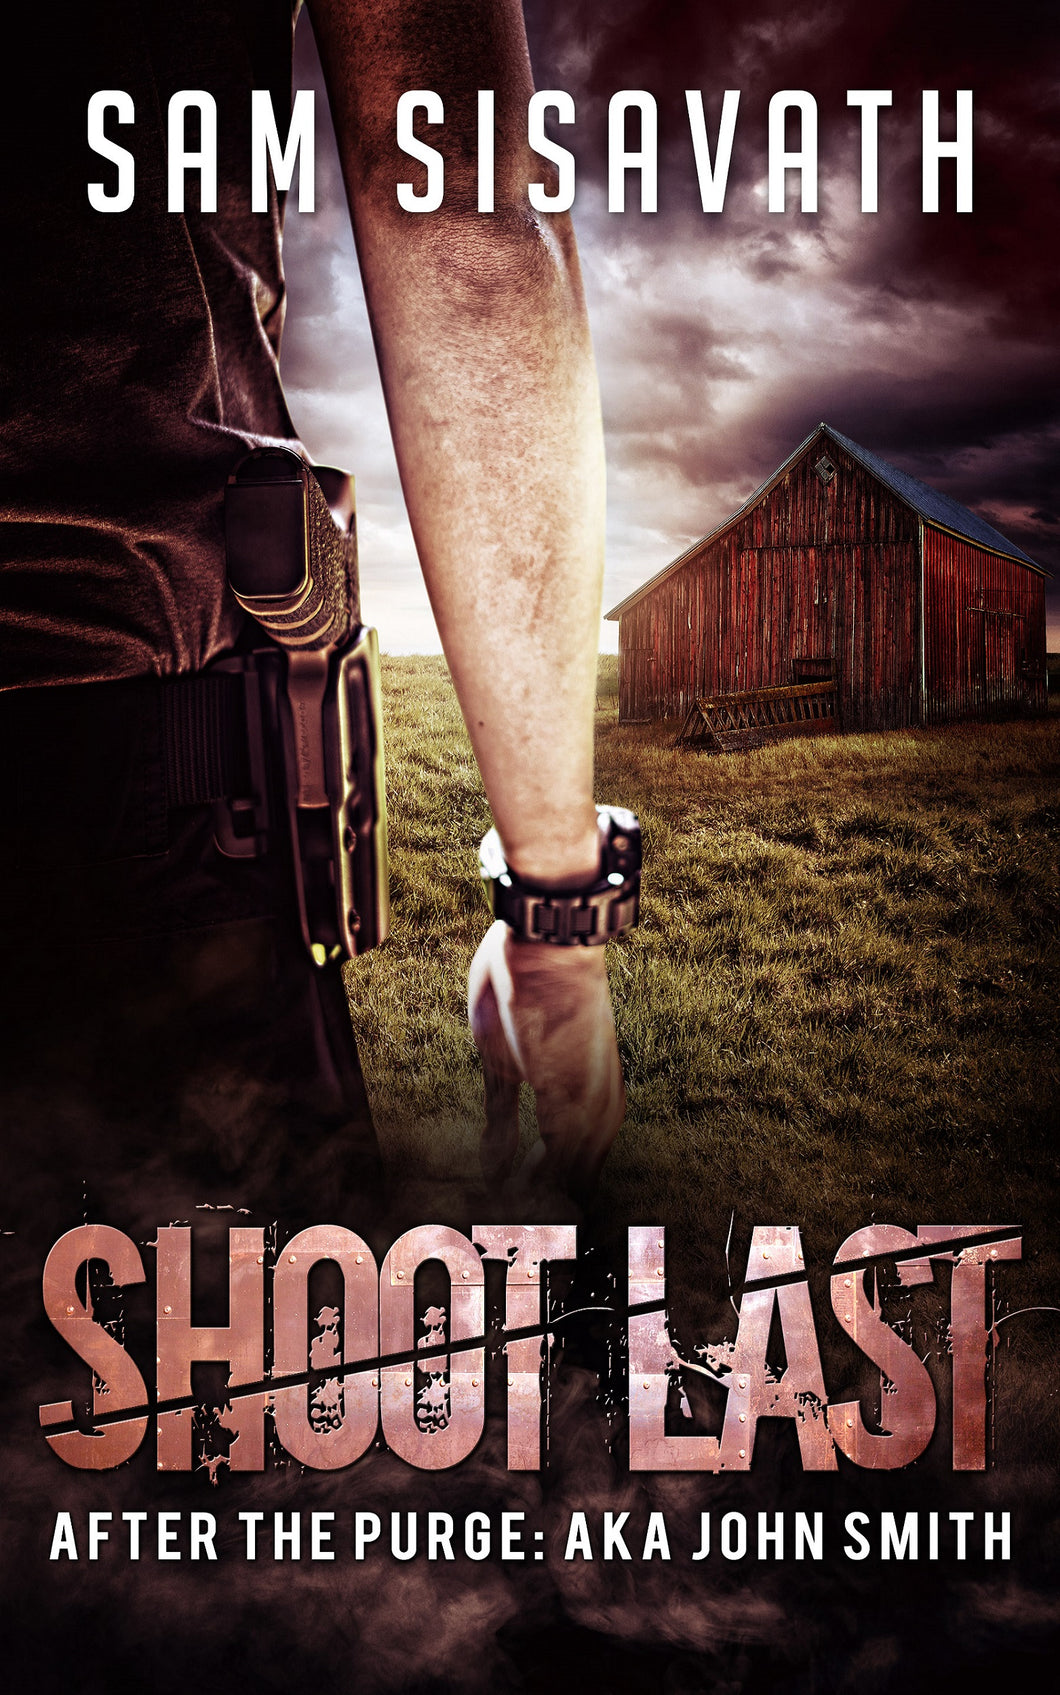 Shoot Last (After the Purge: AKA John Smith #3)